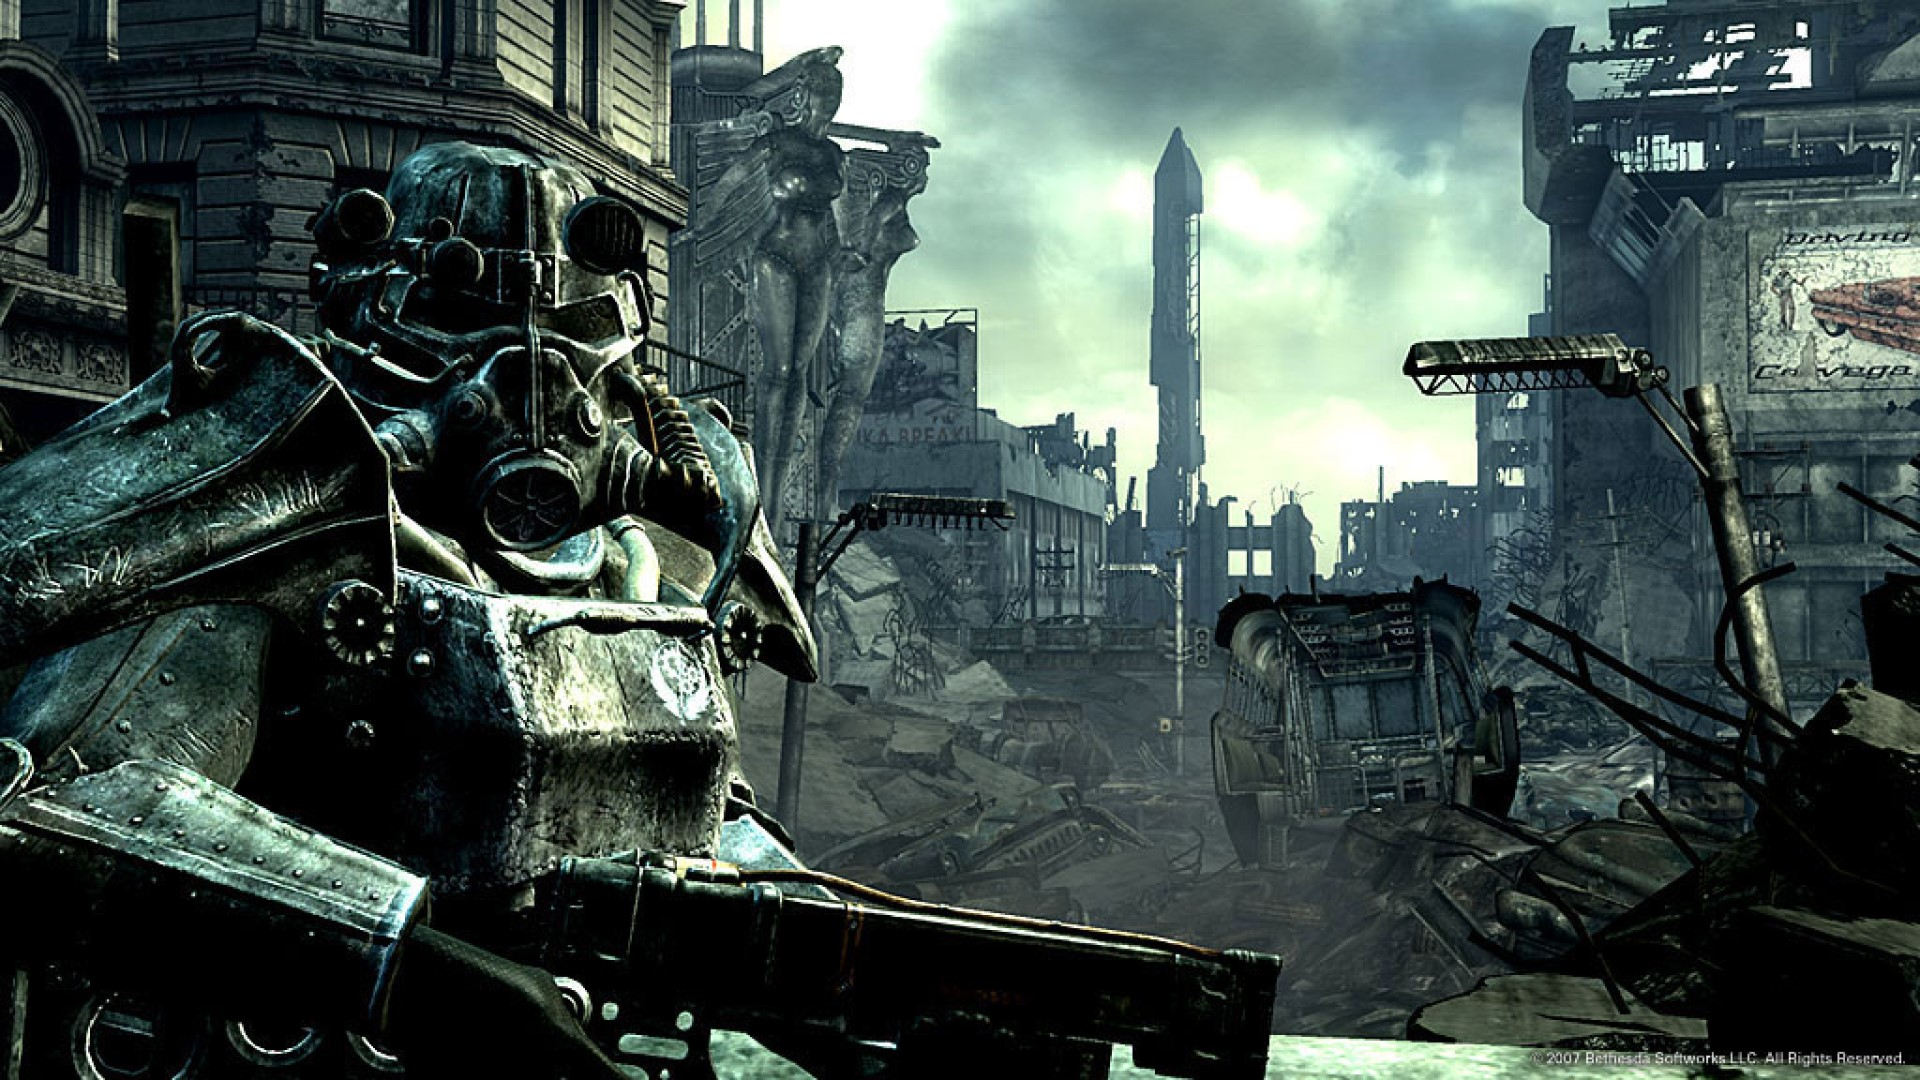 Fallout 3 finally ditches Games For Windows Live after 13 years